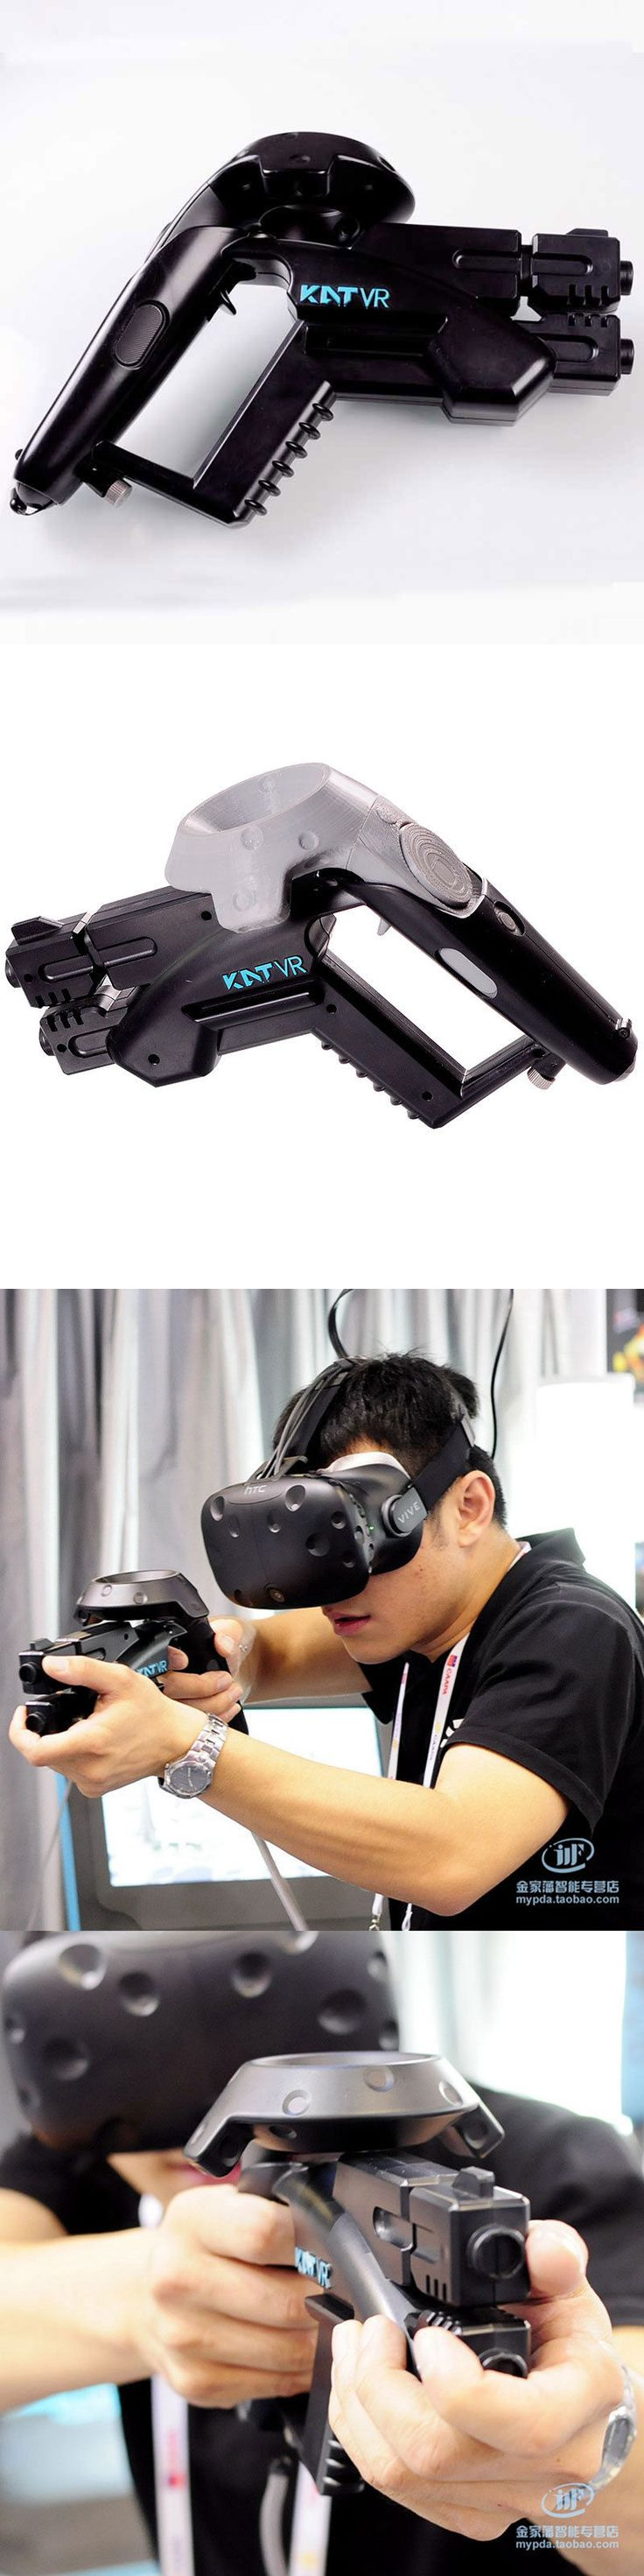 Other Virtual Reality Accs: Small Pistol Gun Vr Handgun Shooting Game For Htc Vive Glasses Vr Shop -> BUY IT NOW ONLY: $53.99 on eBay!